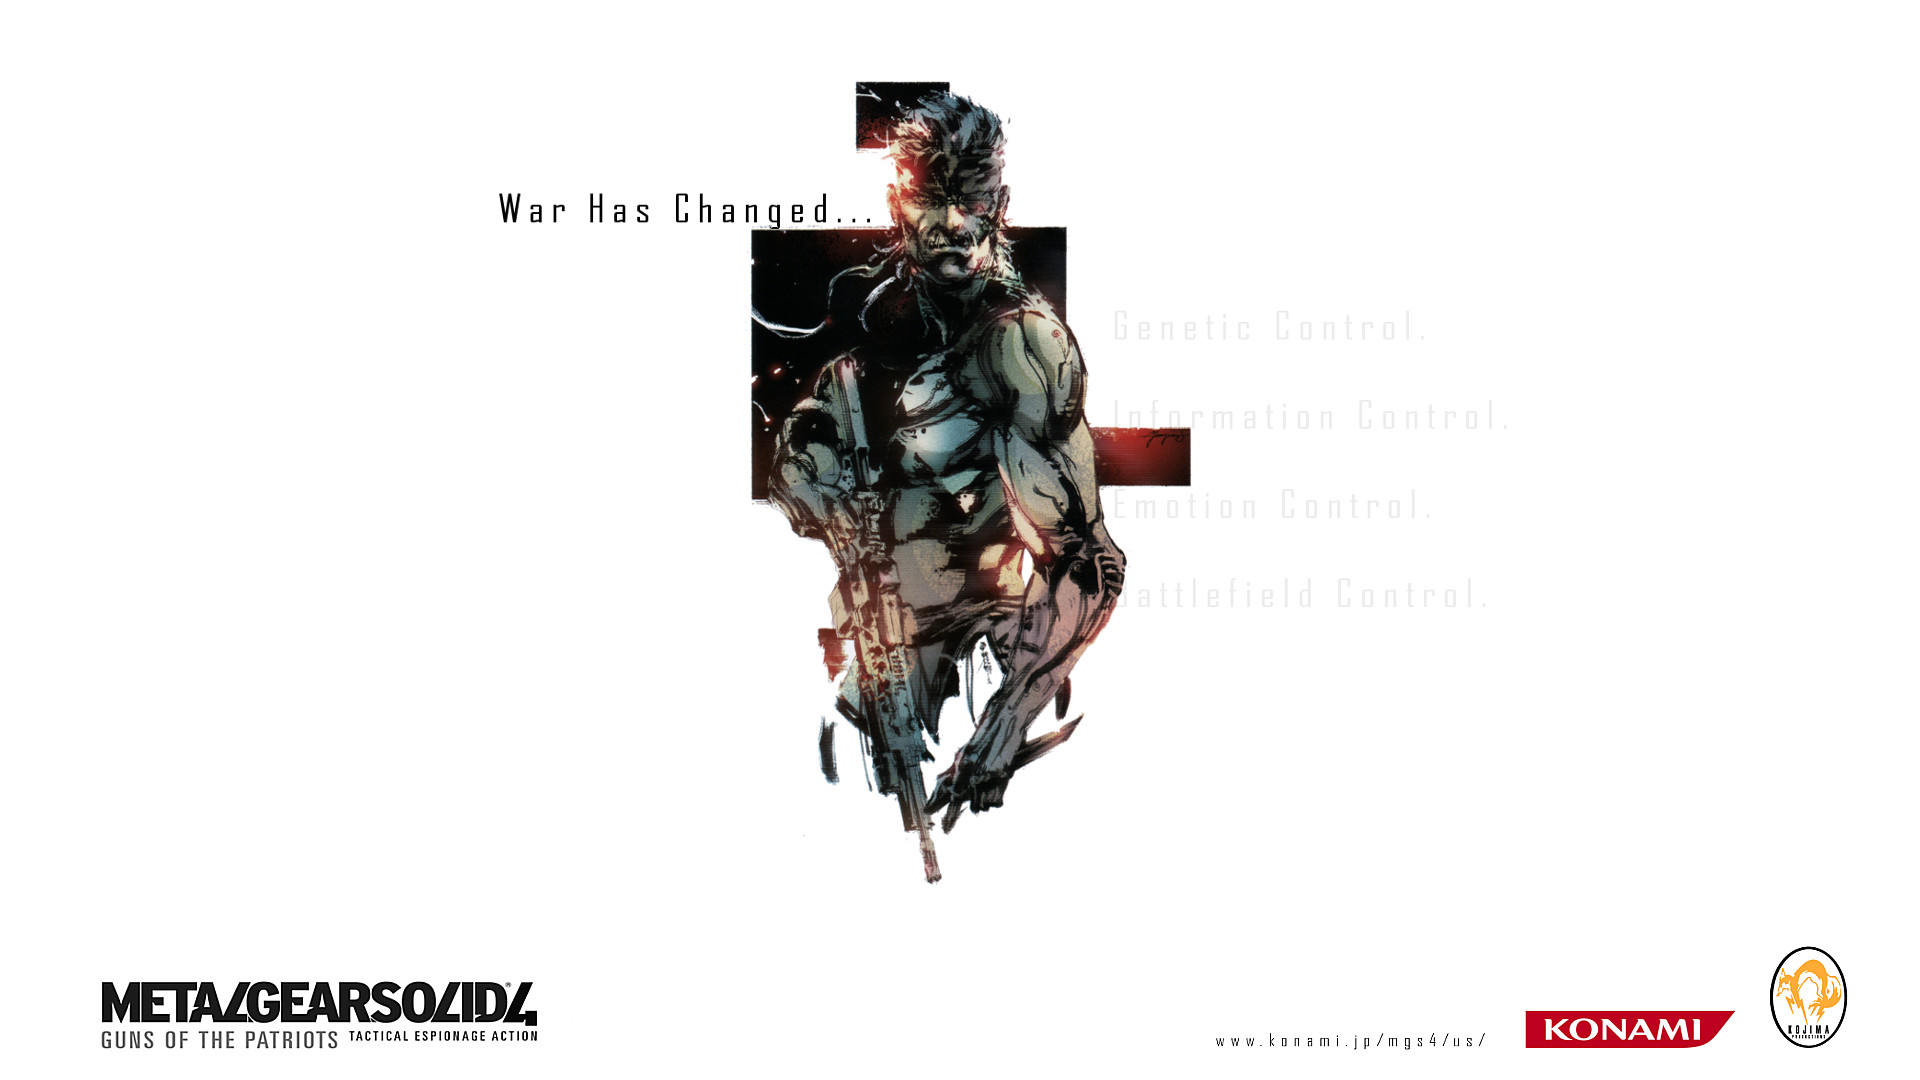 Diamond Dogs Metal Gear Wallpaper Images & Pictures – Becuo